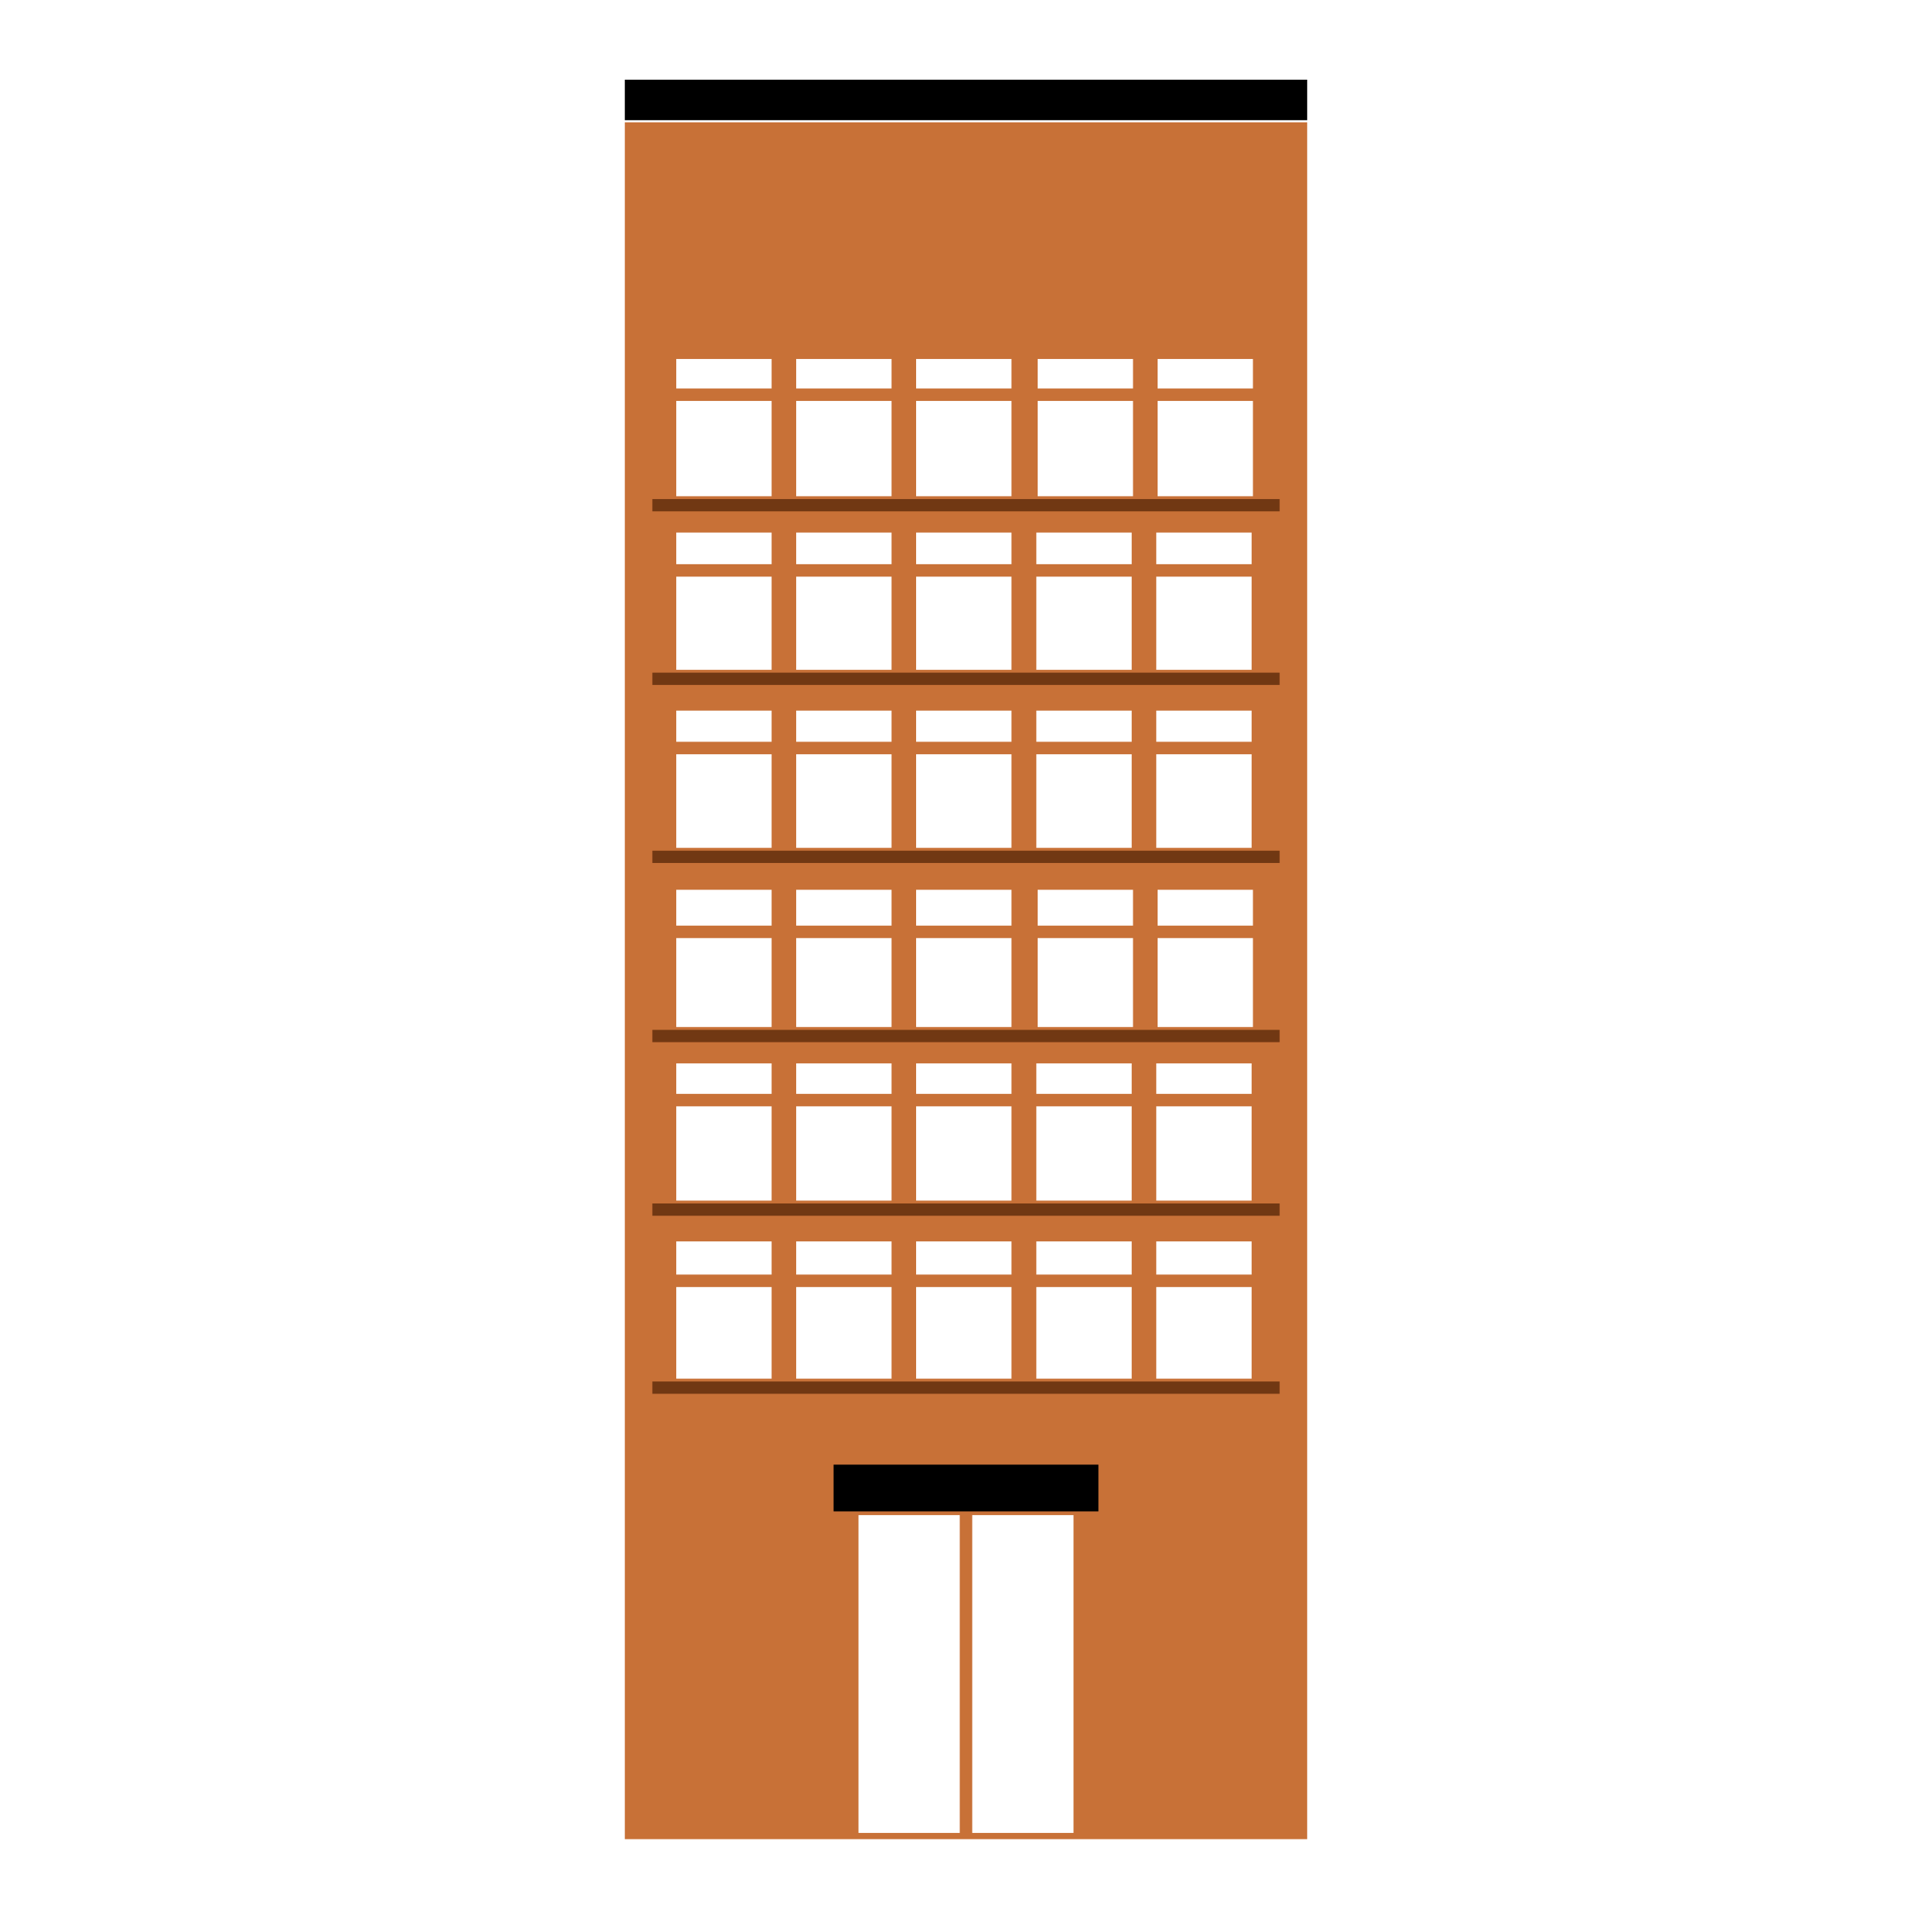 Tall building clipart 7 » Clipart Station.